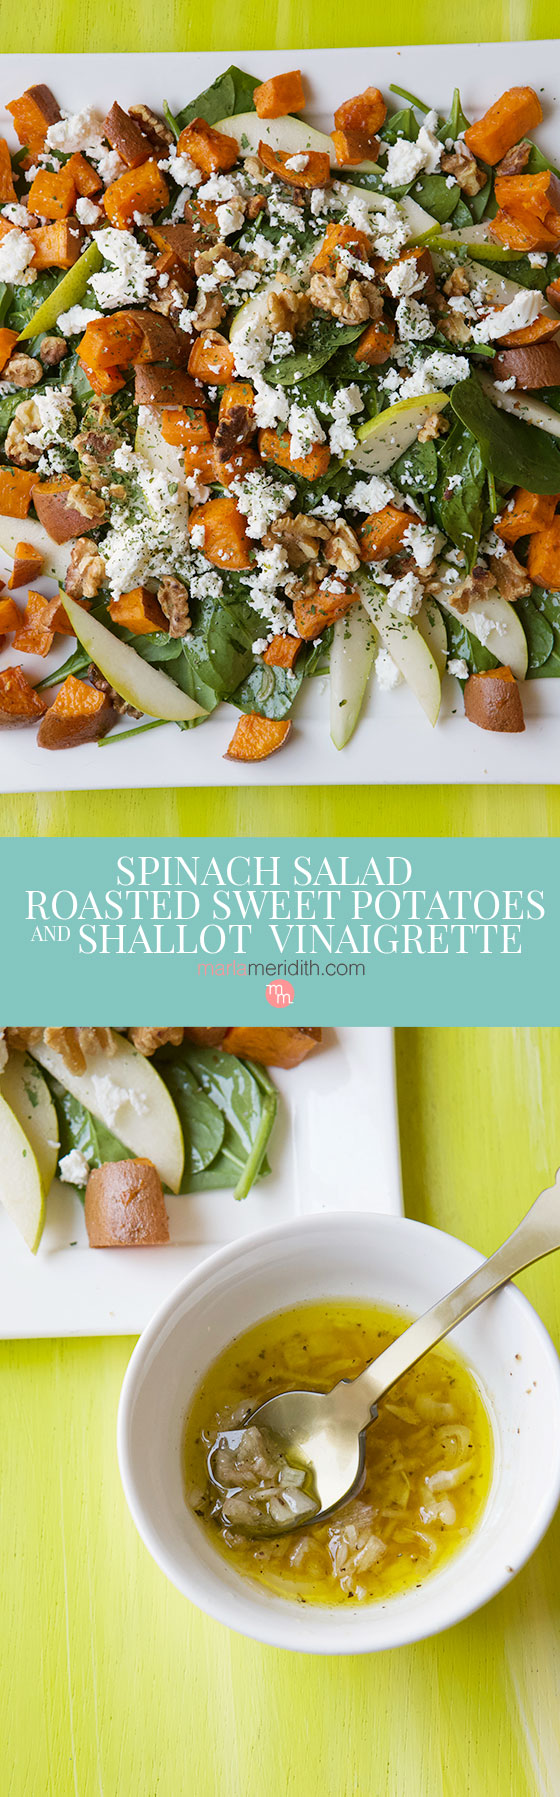 We love this healthy and delicious Spinach Salad with Roasted Sweet Potatoes and Shallot Vinaigrette recipe, a gluten free, vegetarian dish great for the holidays! MarlaMeridith.com